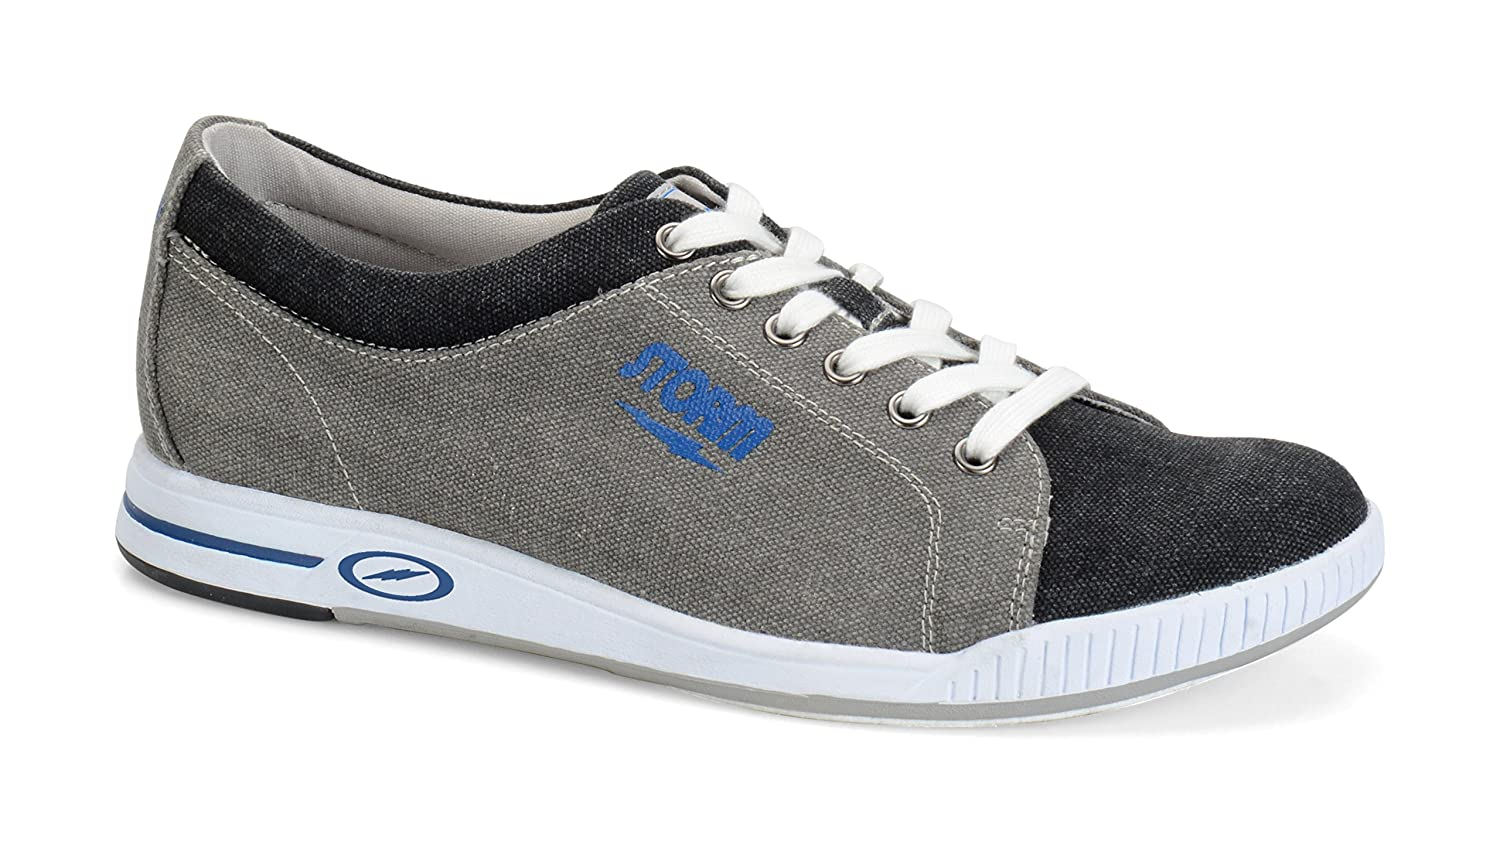 Storm Gust Bowling Shoes Grey/Black/Blue